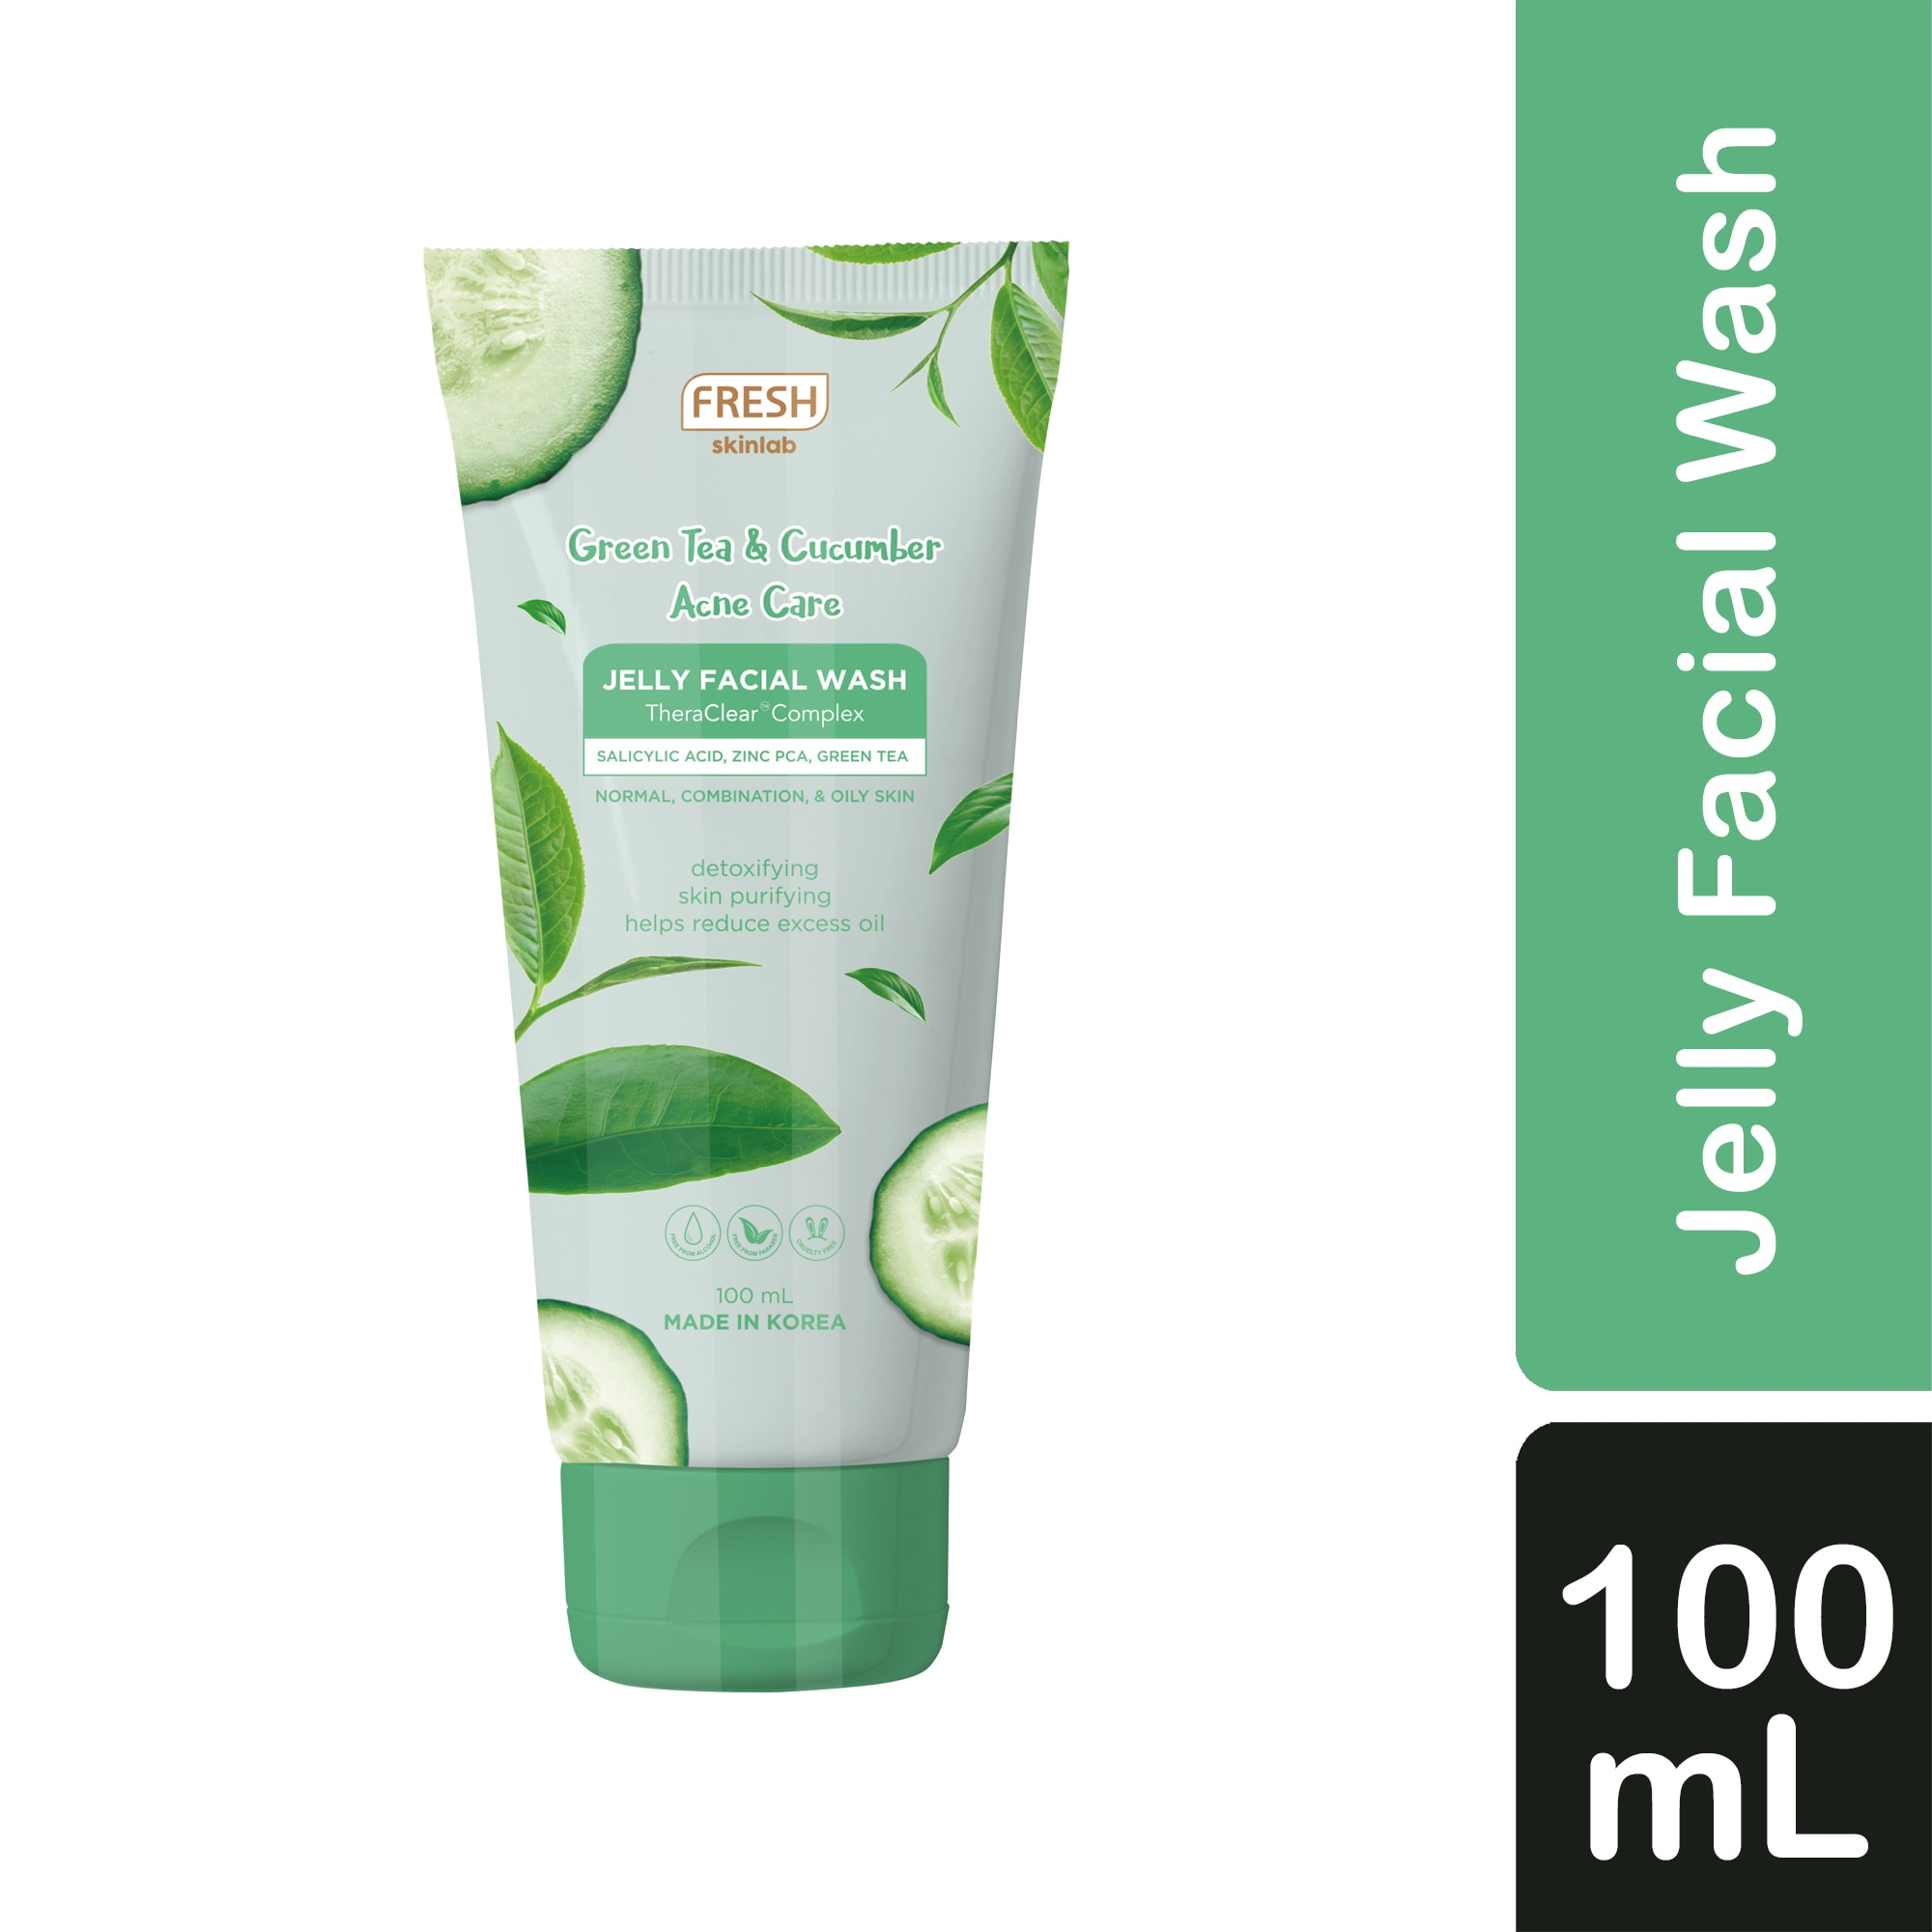 FRESHGreen Tea and Cucumber Acne Care Jelly Facial Wash 100 mL,For WomenExtra P150 off – min spend P1,000 (code:PD150) - Members Only, P100 off – min spend P1,000 (code: PD100). Promo exclusions: Health items, Milk, B1T1 and Buy xx for xx promos